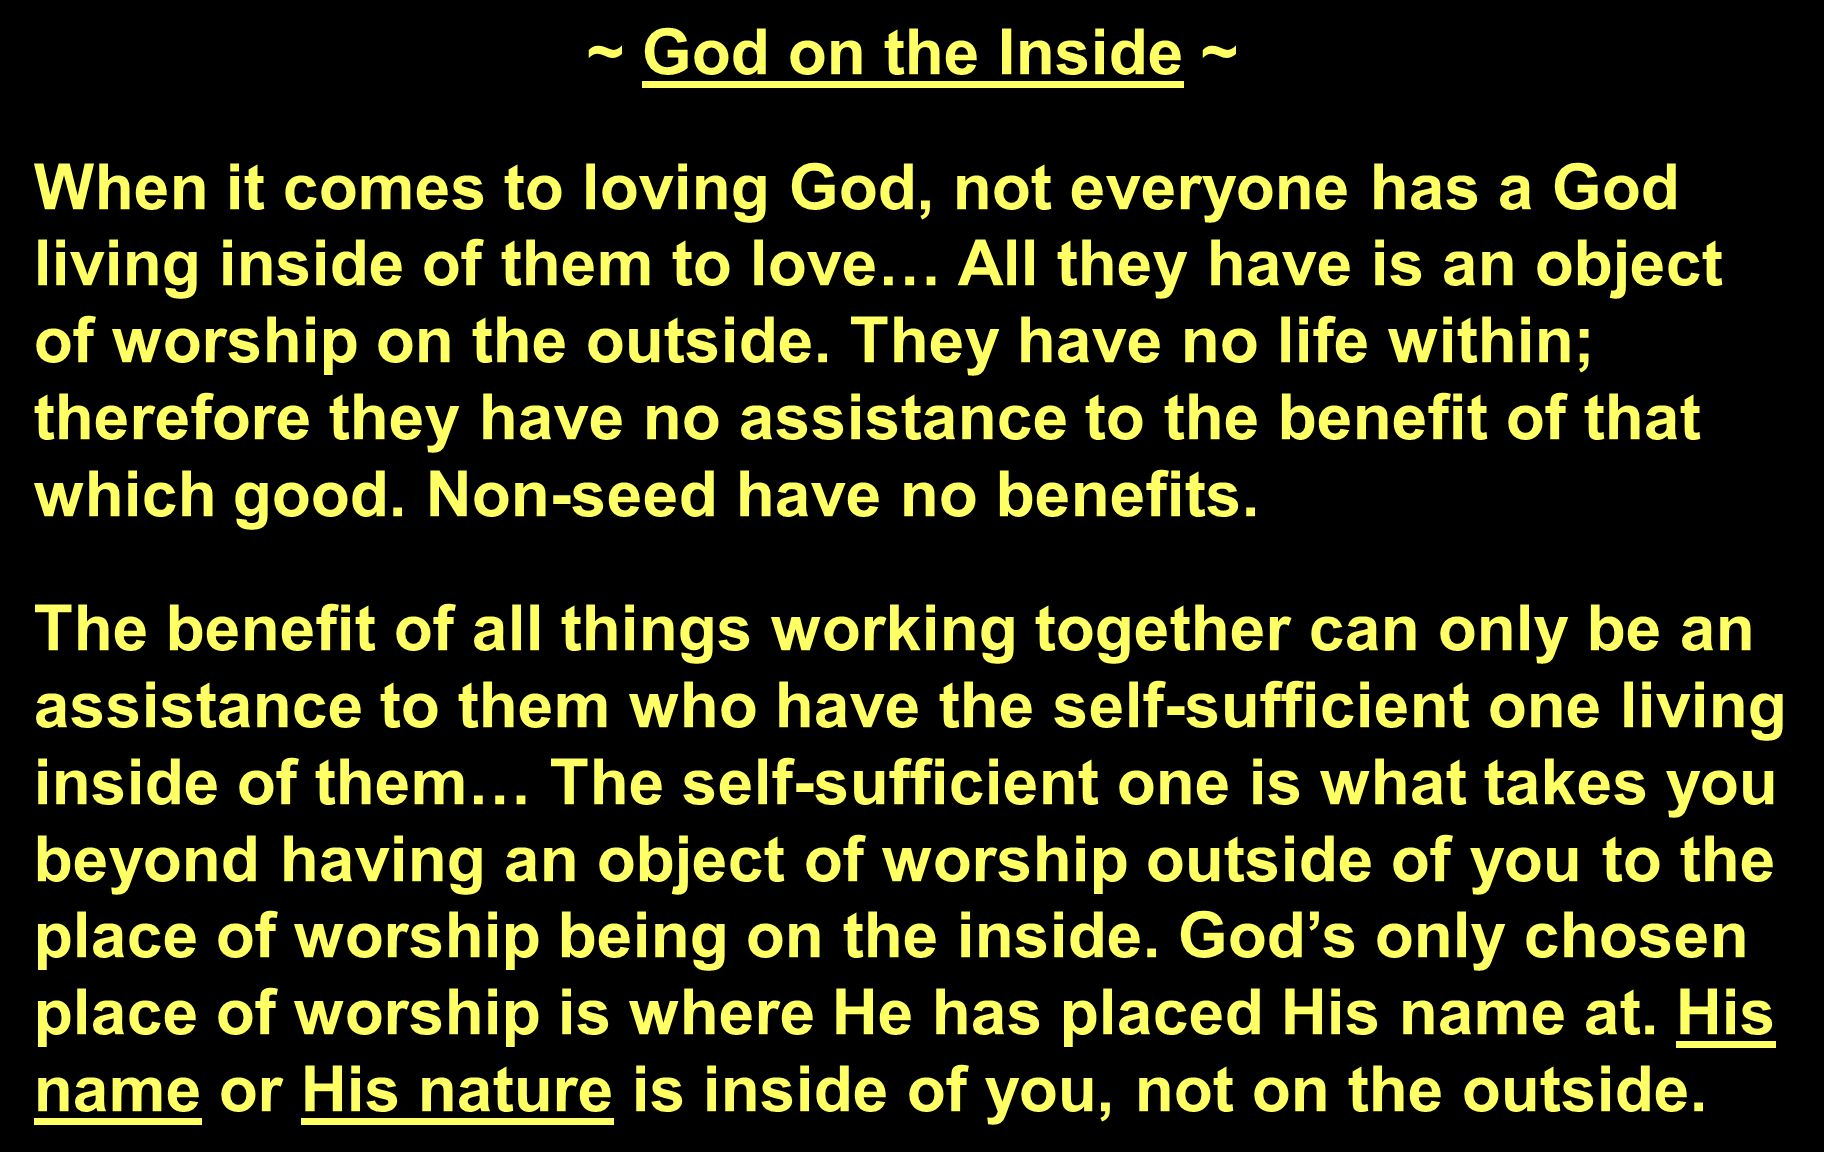 ~ God on the Inside ~ When it comes to loving God, not everyone has a God living inside of them to love… All they have is an object of worship on the